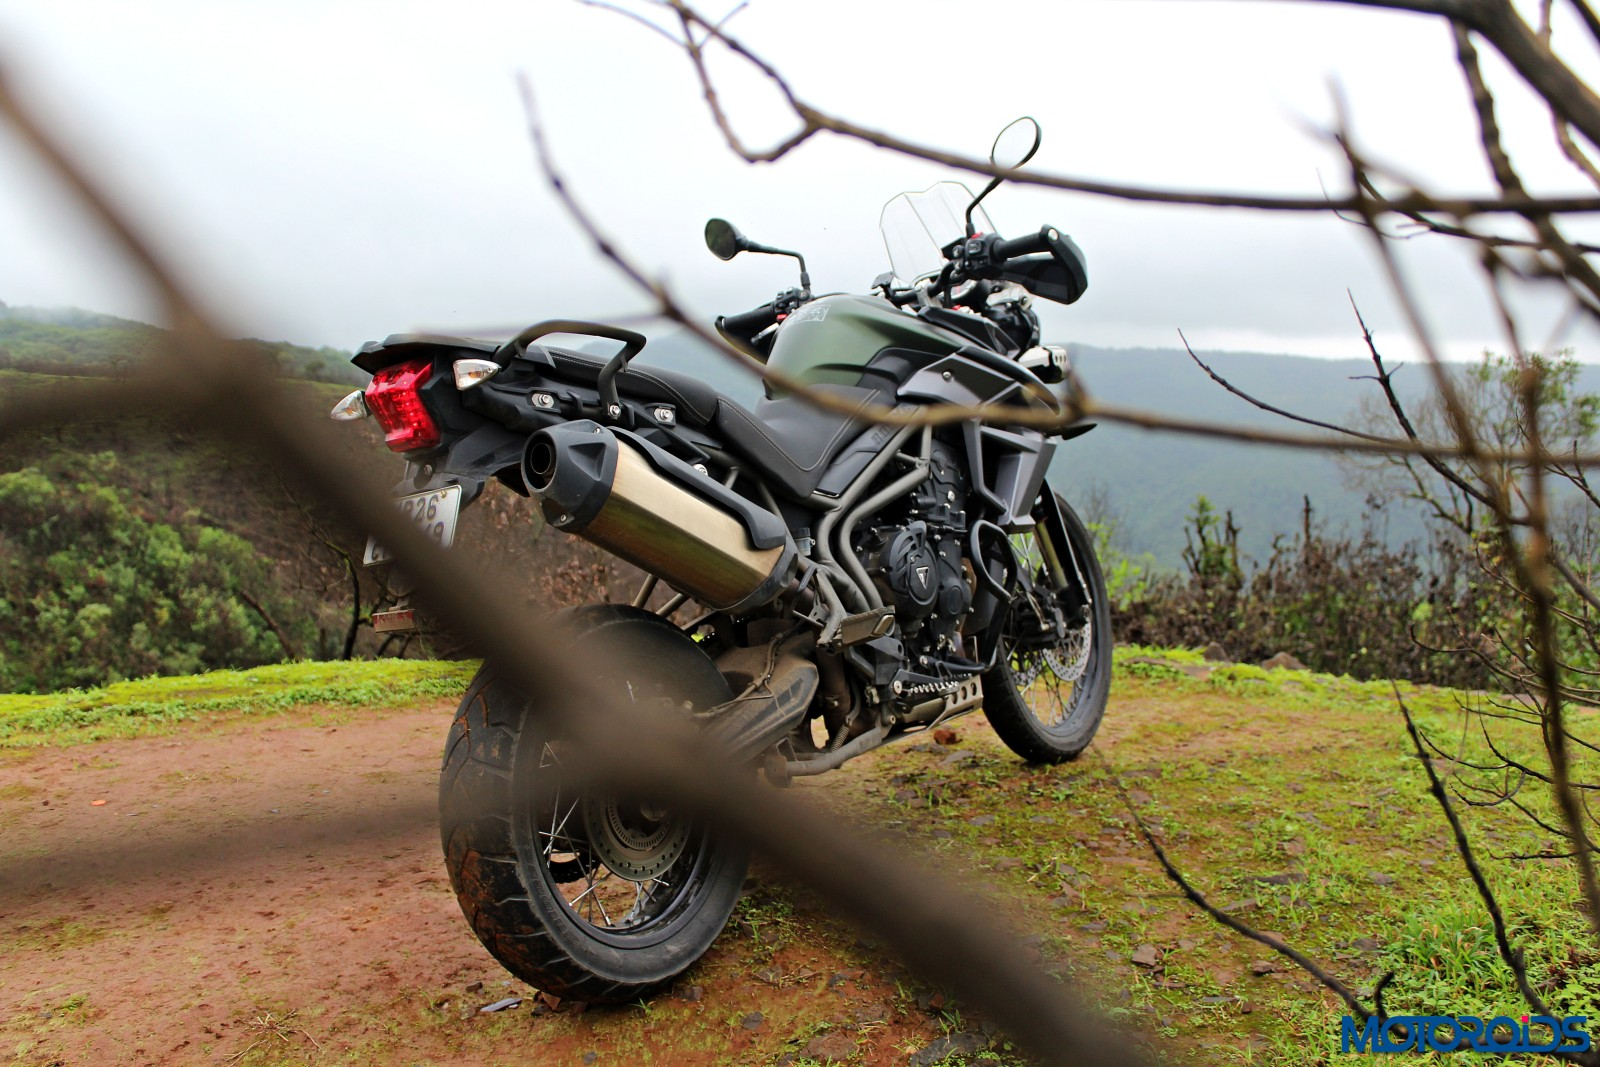 triumph-tiger-800-xca-review-78